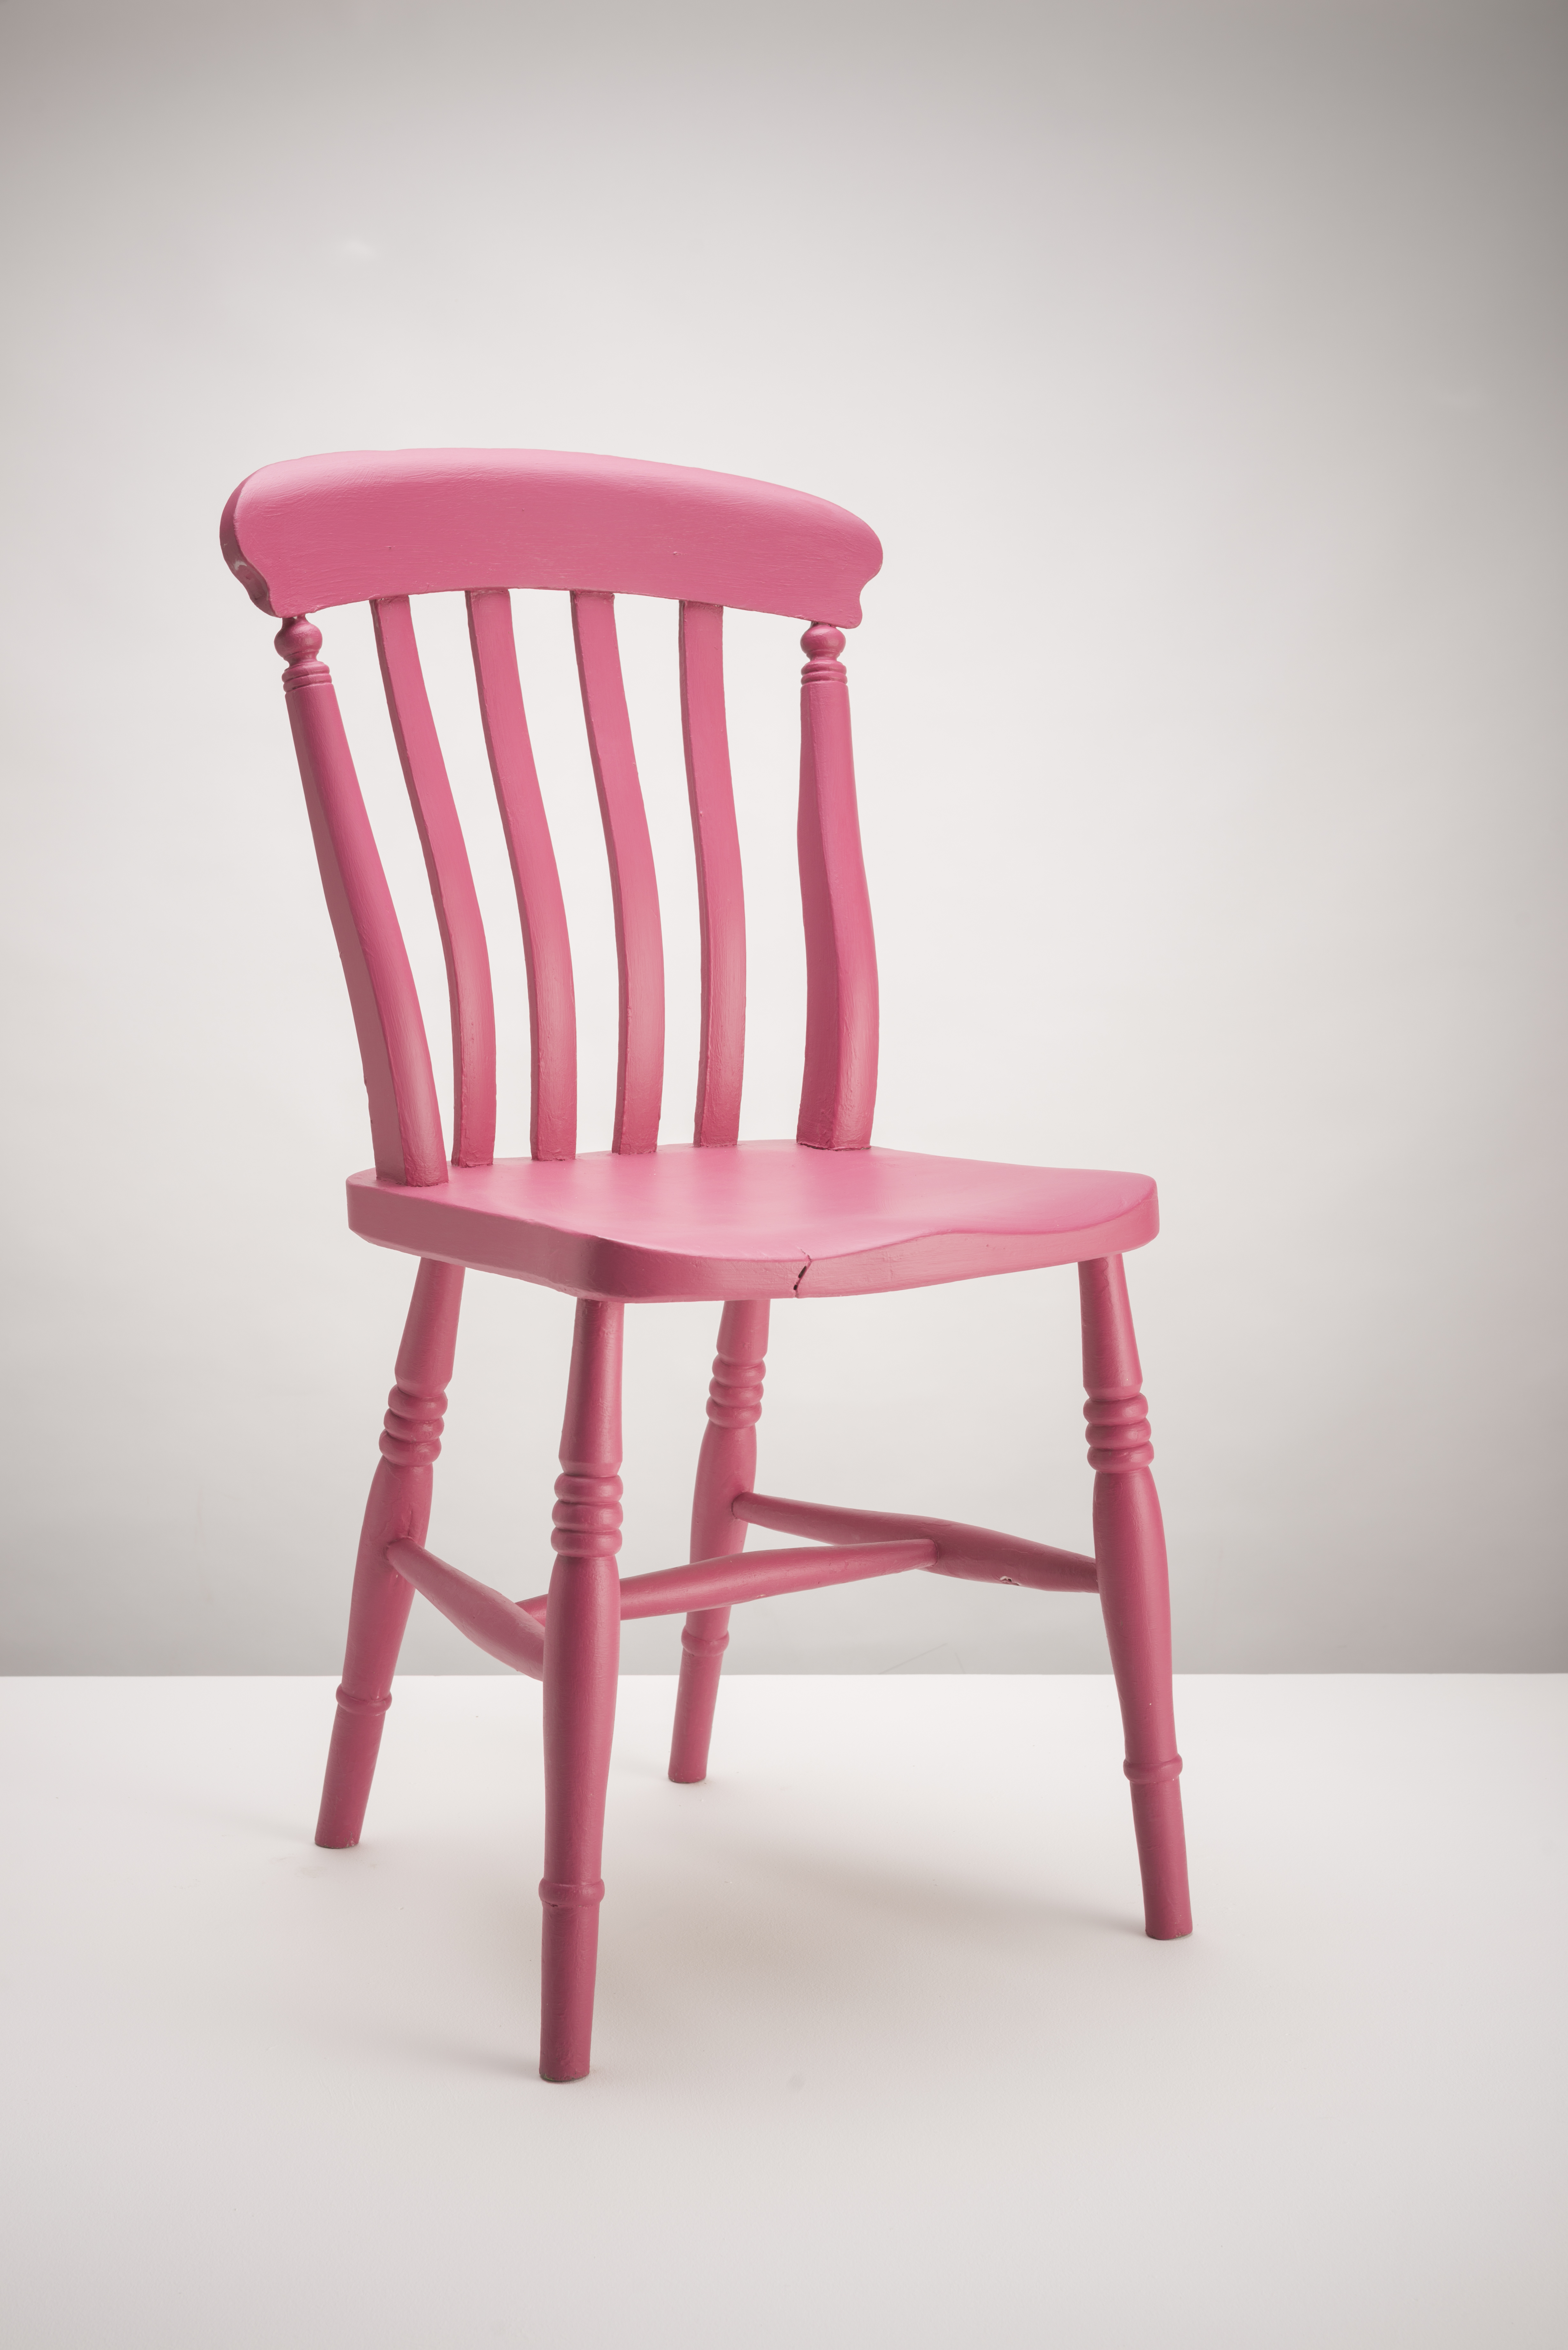 Example of Pink Hand painted Chair